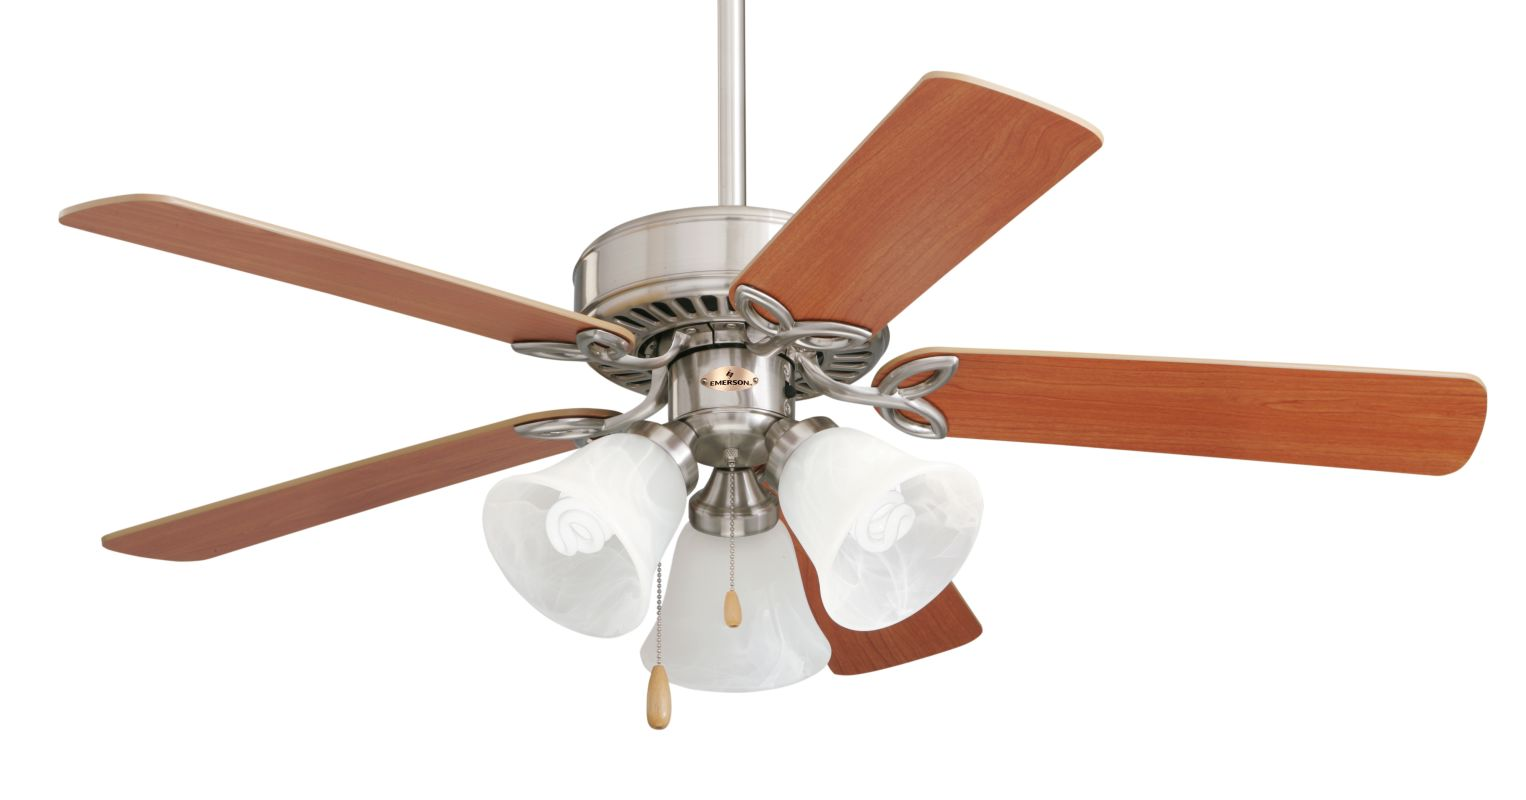 """Emerson CF710 Builder Plus 42"""" 5 Blade Ceiling Fan - Blades and Light"""